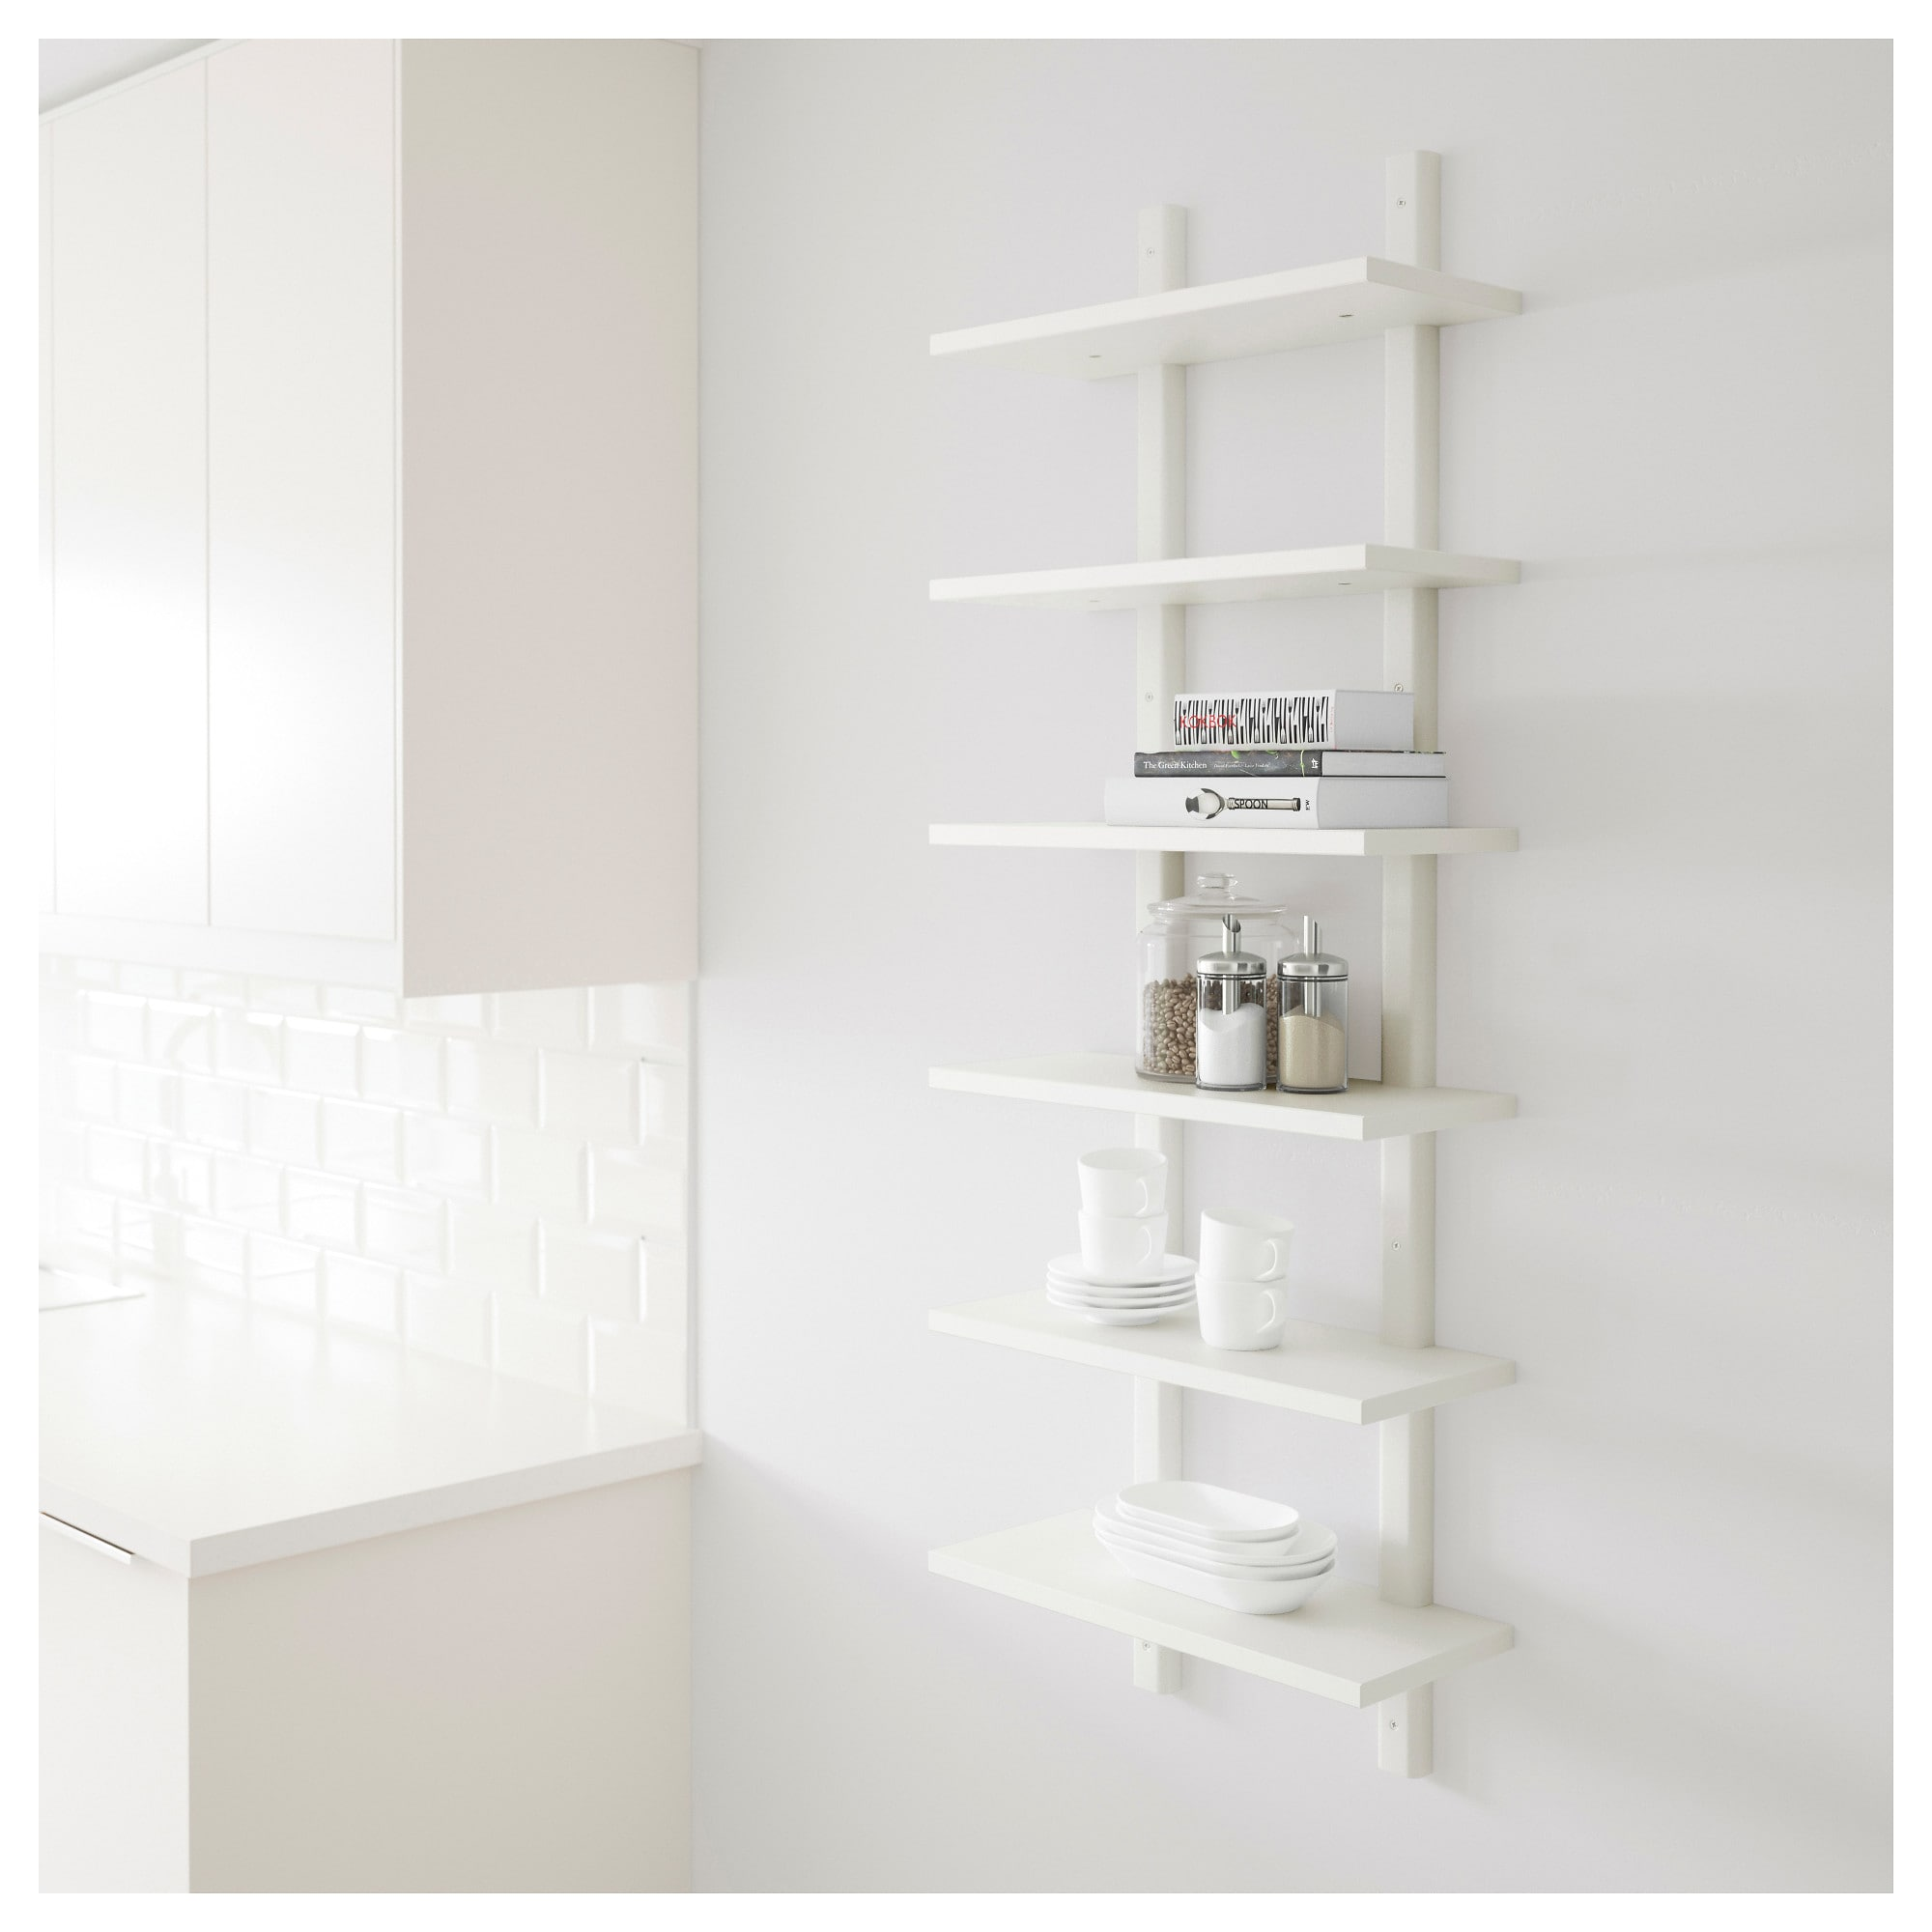 Surprising Varde Wall Shelf White Next House Ikea Wall Shelves Download Free Architecture Designs Lectubocepmadebymaigaardcom